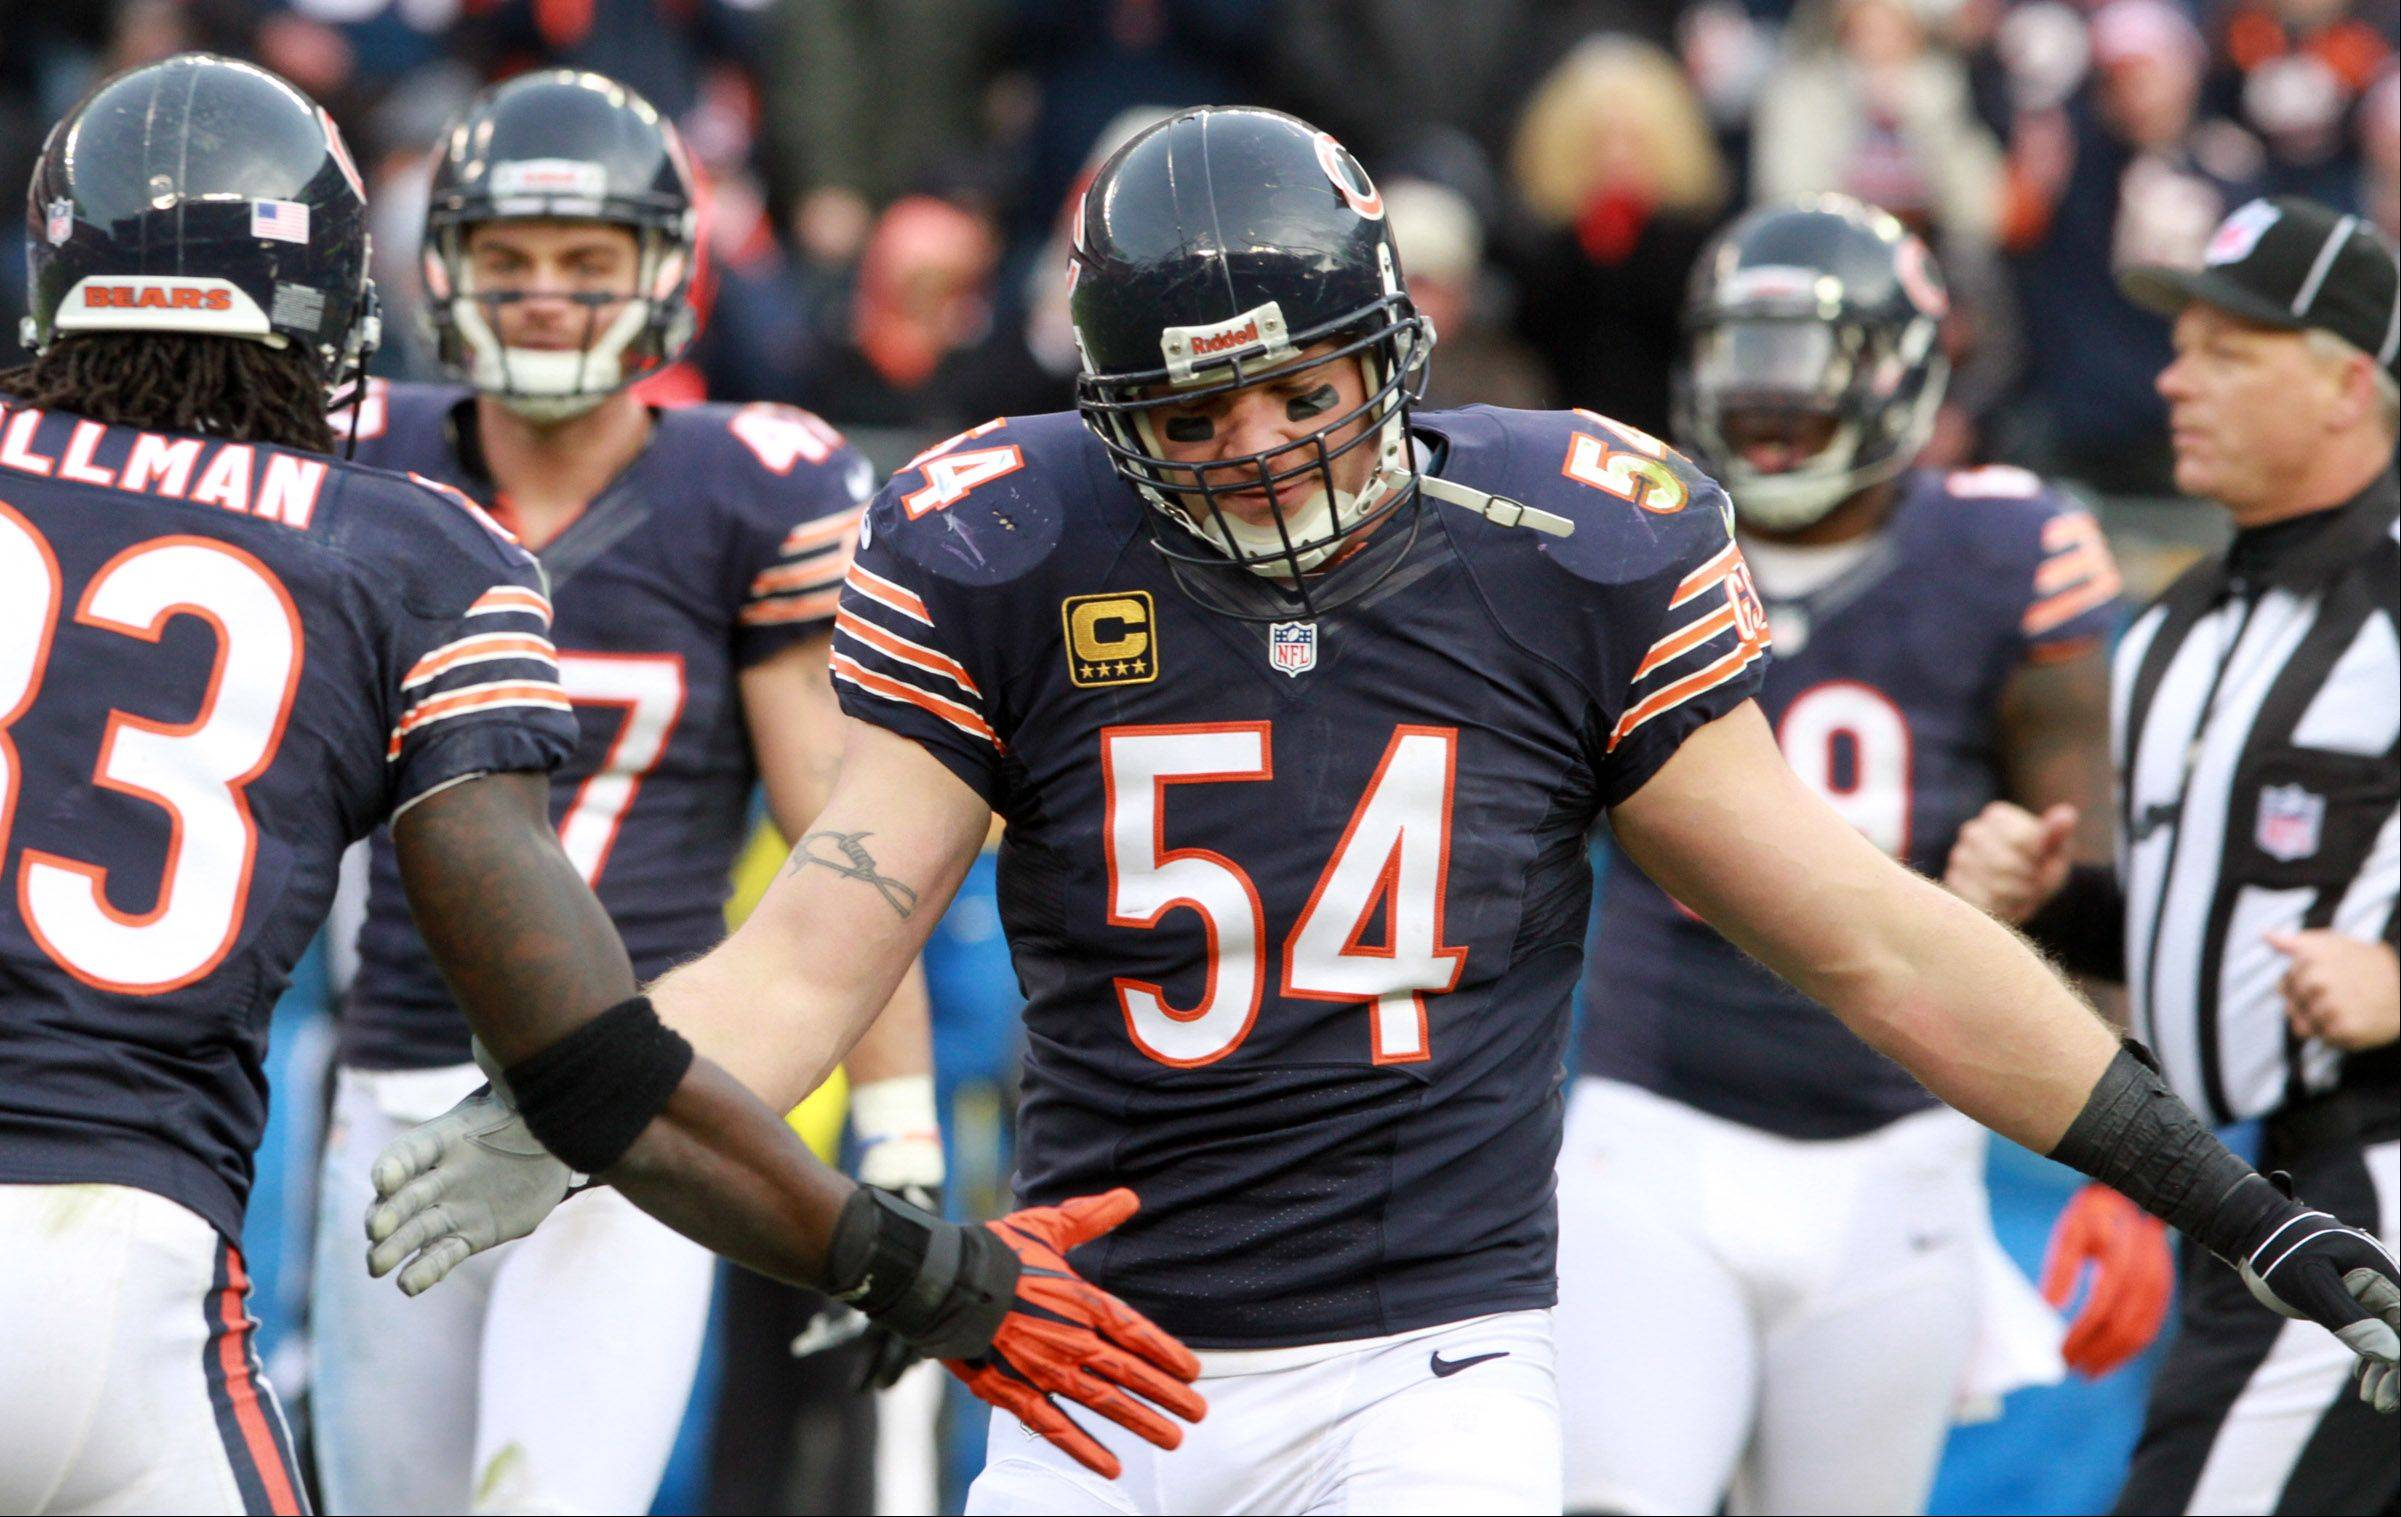 Chicago Bears cornerback Charles Tillman and linebacker Brian Urlacher celebrate a third-down defensive stop against the Vikings at Soldier Field Sunday.